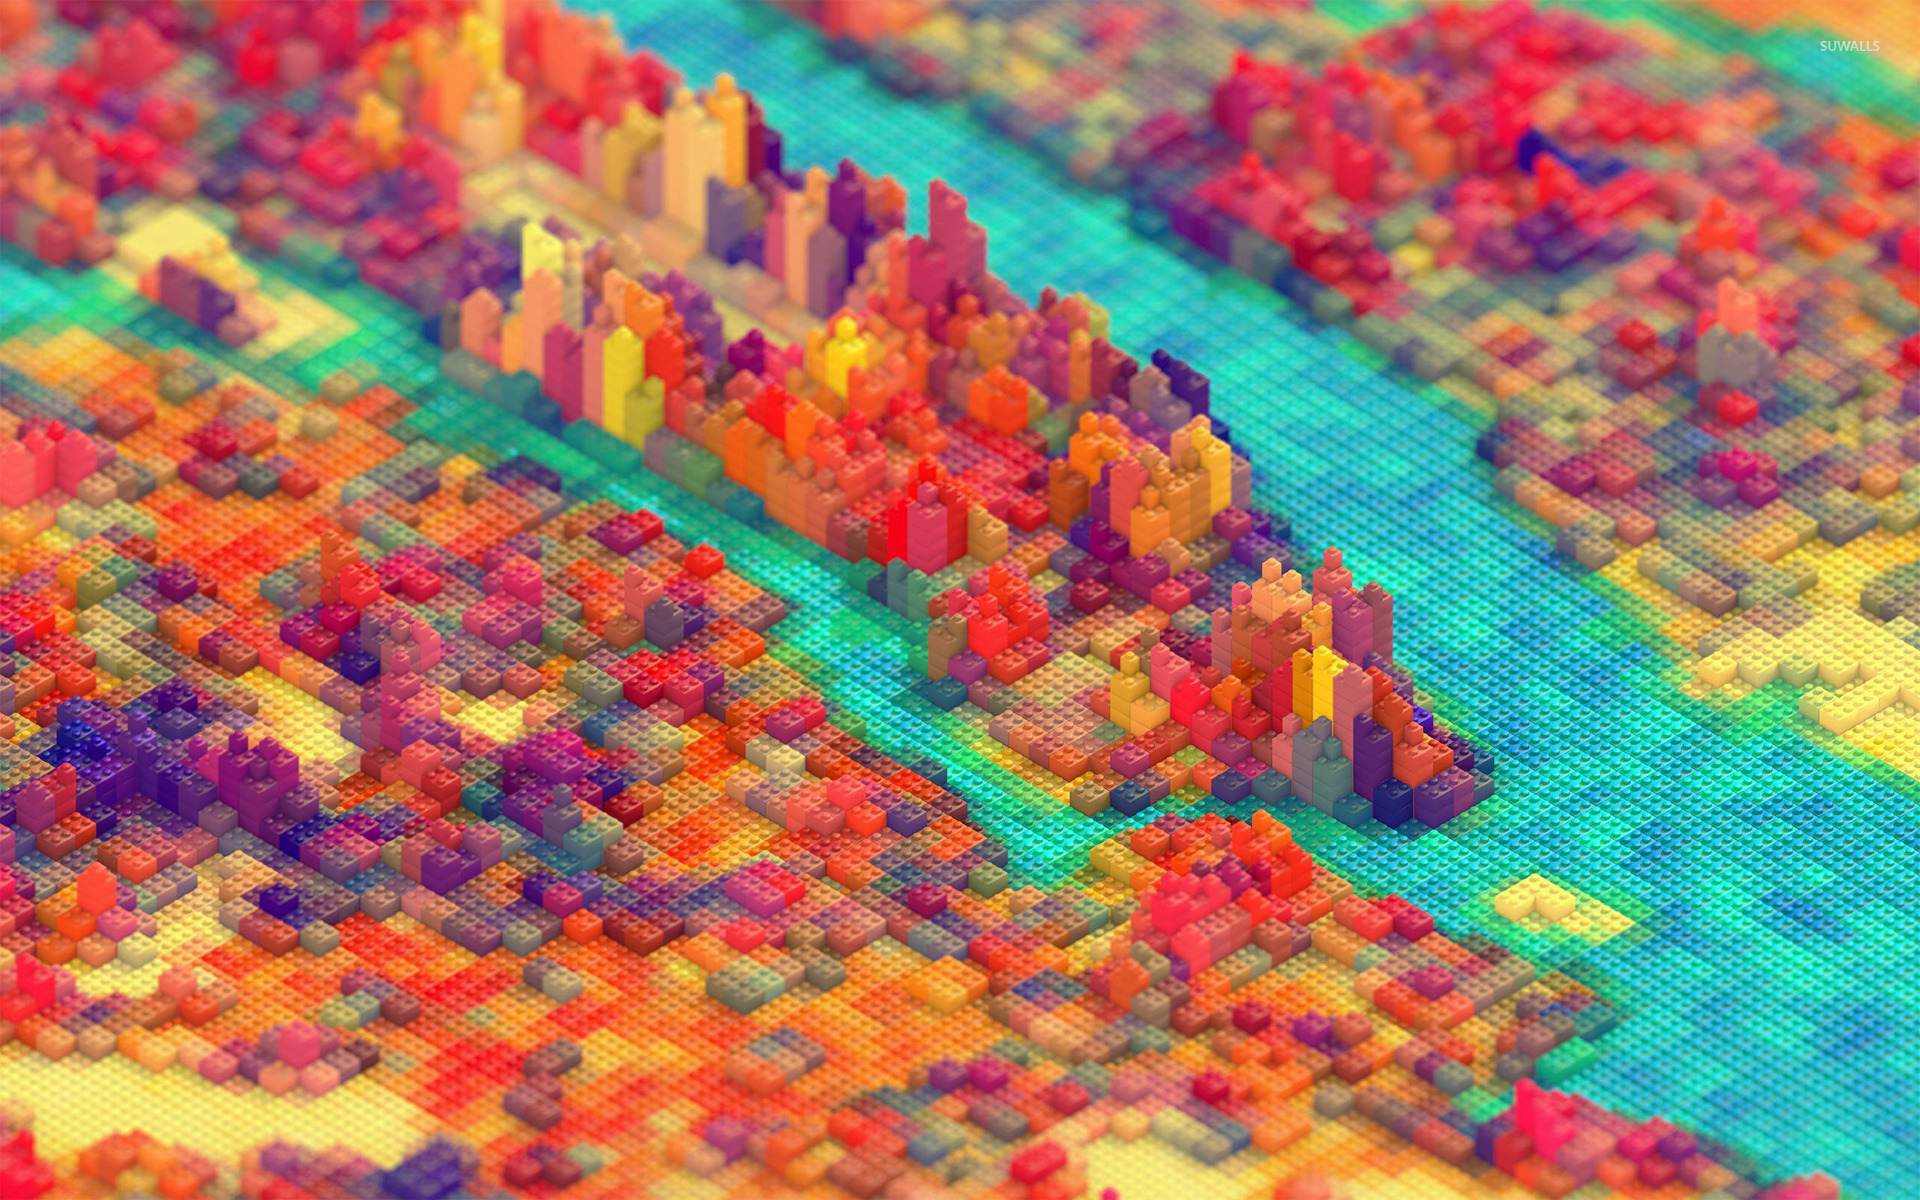 Colorful Lego Landscape Wallpaper Artistic Wallpapers 16154